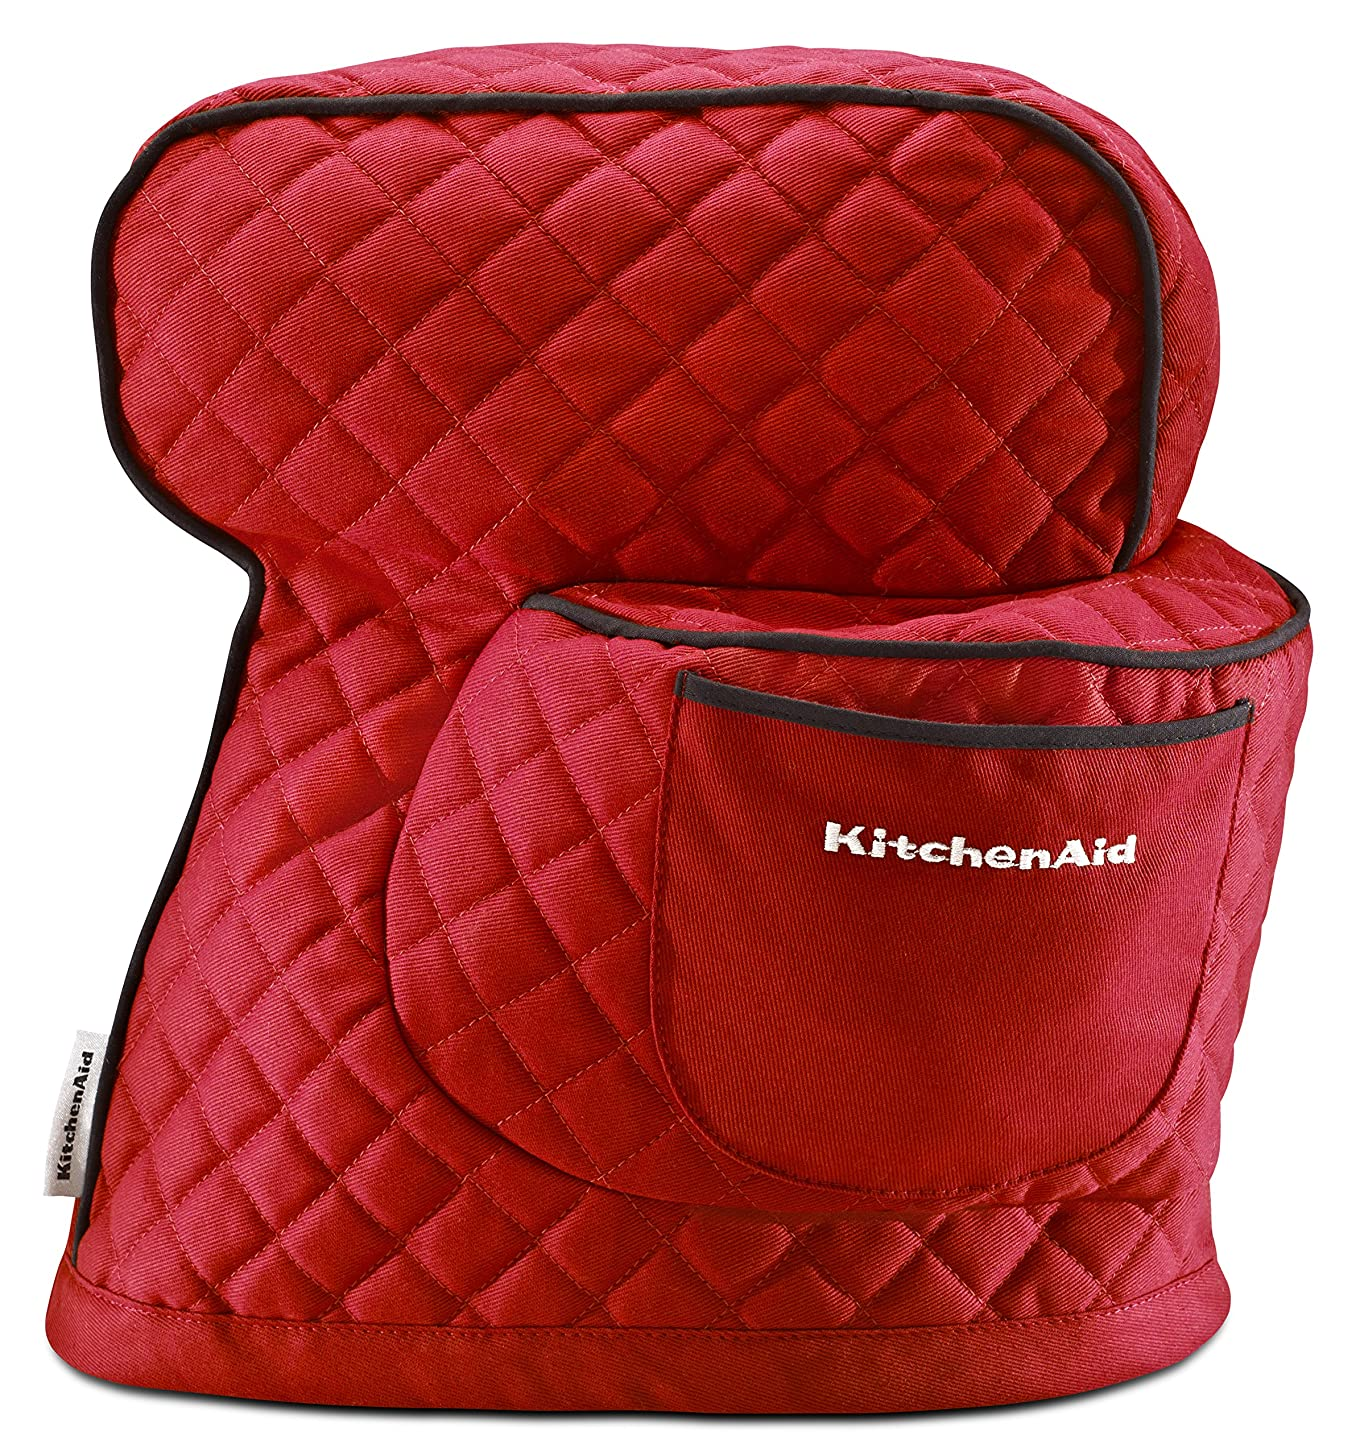 KitchenAid KSMCT1ER Fitted Stand Mixer Cover for Tilt head stand mixer models (4.5-quart and 5-quart), Empire Red